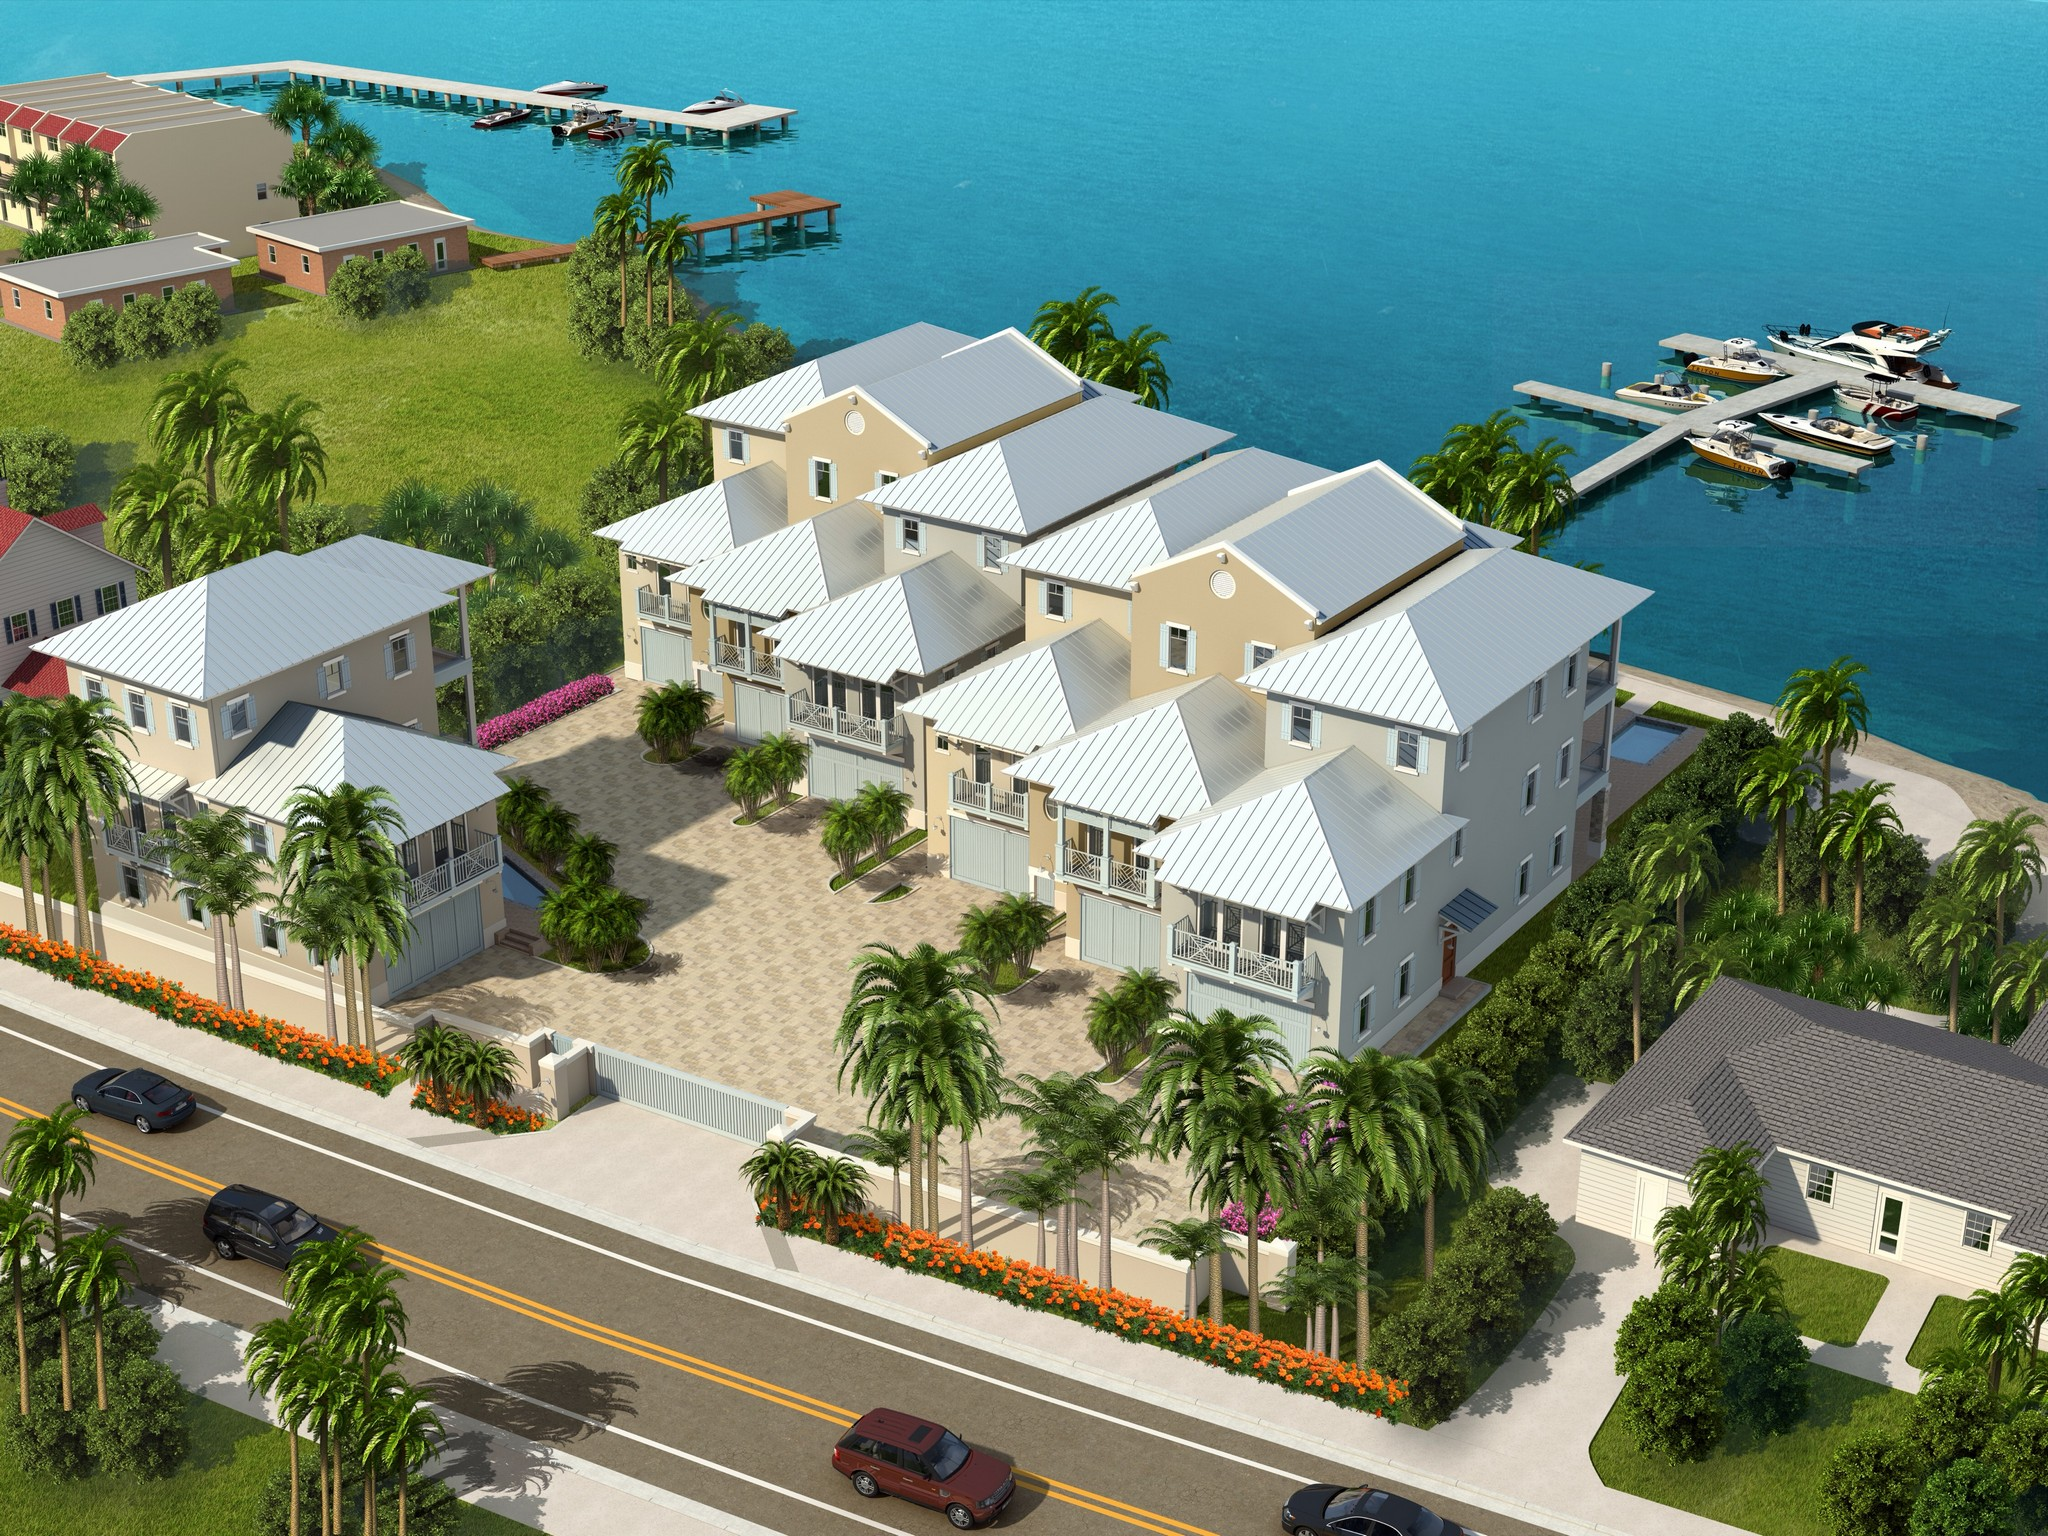 Moradia em banda para Venda às Riverfront Ultra-luxury townhome 1502 Seaway Drive #2 Fort Pierce, Florida 34949 Estados Unidos